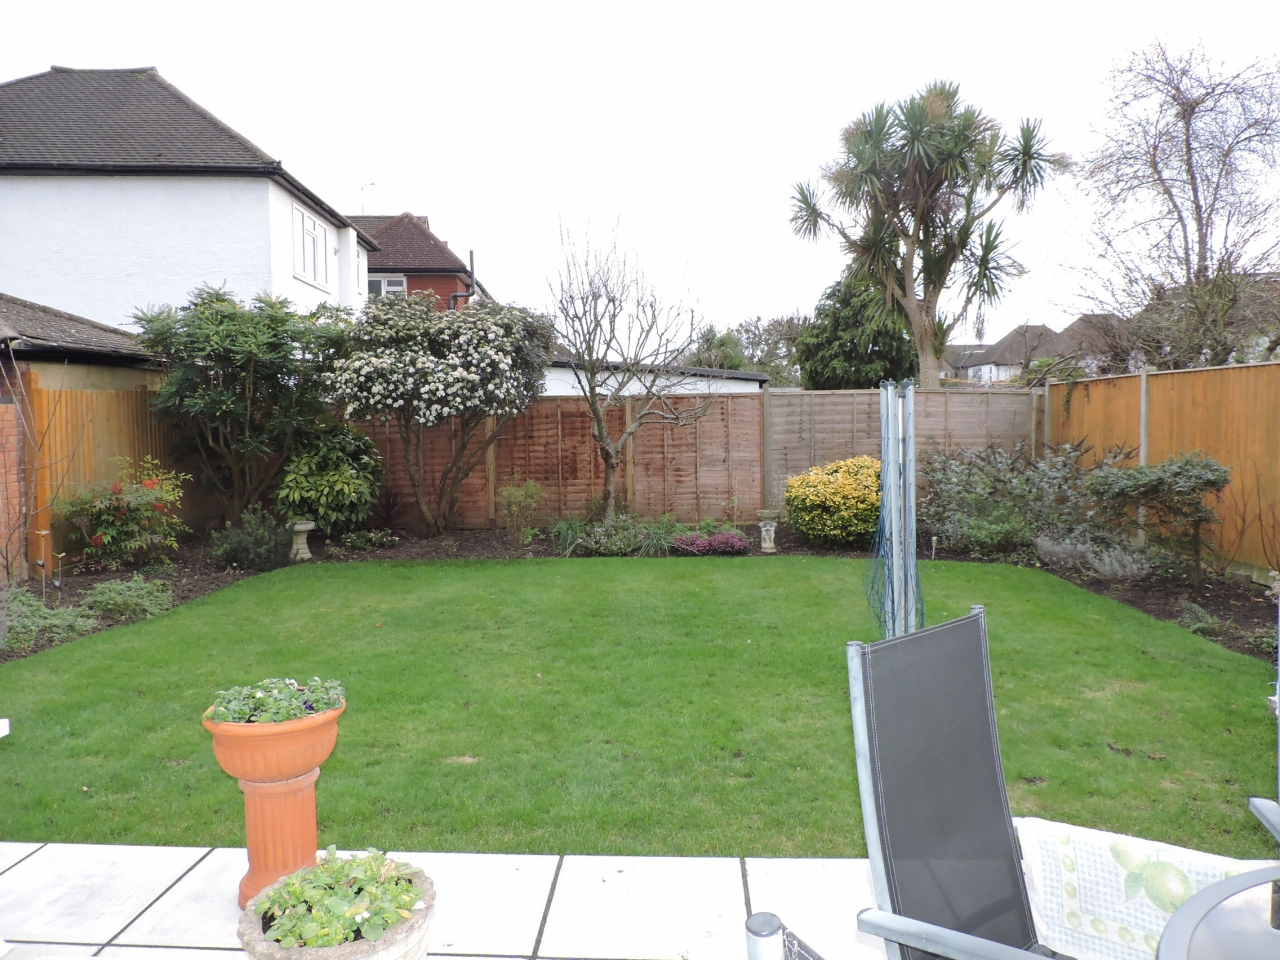 4 bedroom detached house SSTC in New Malden - Photograph 13